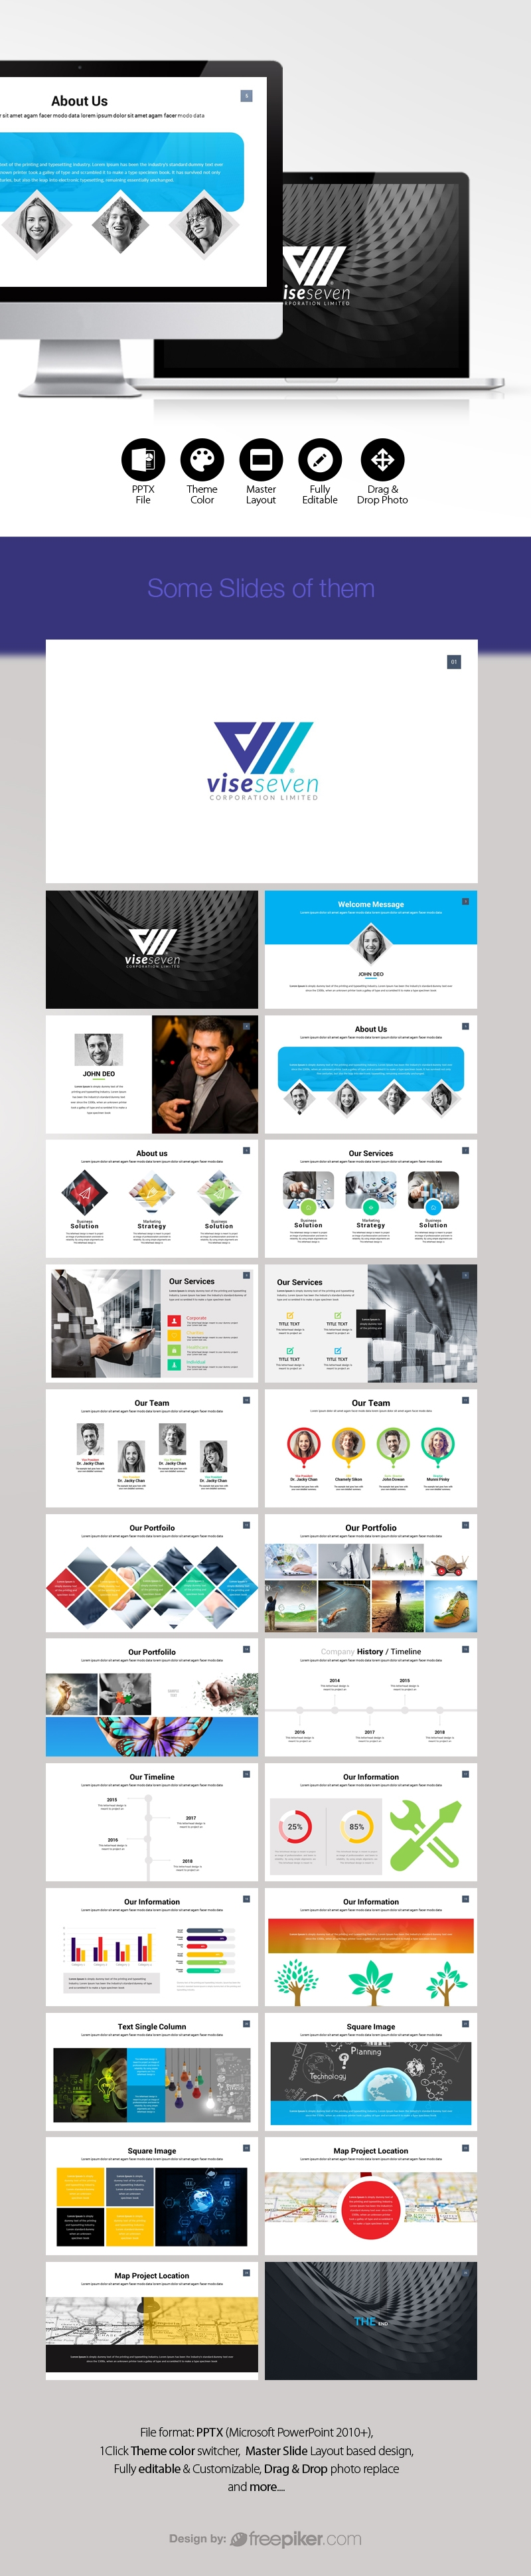 Marketofy Ultimate PowerPoint Template